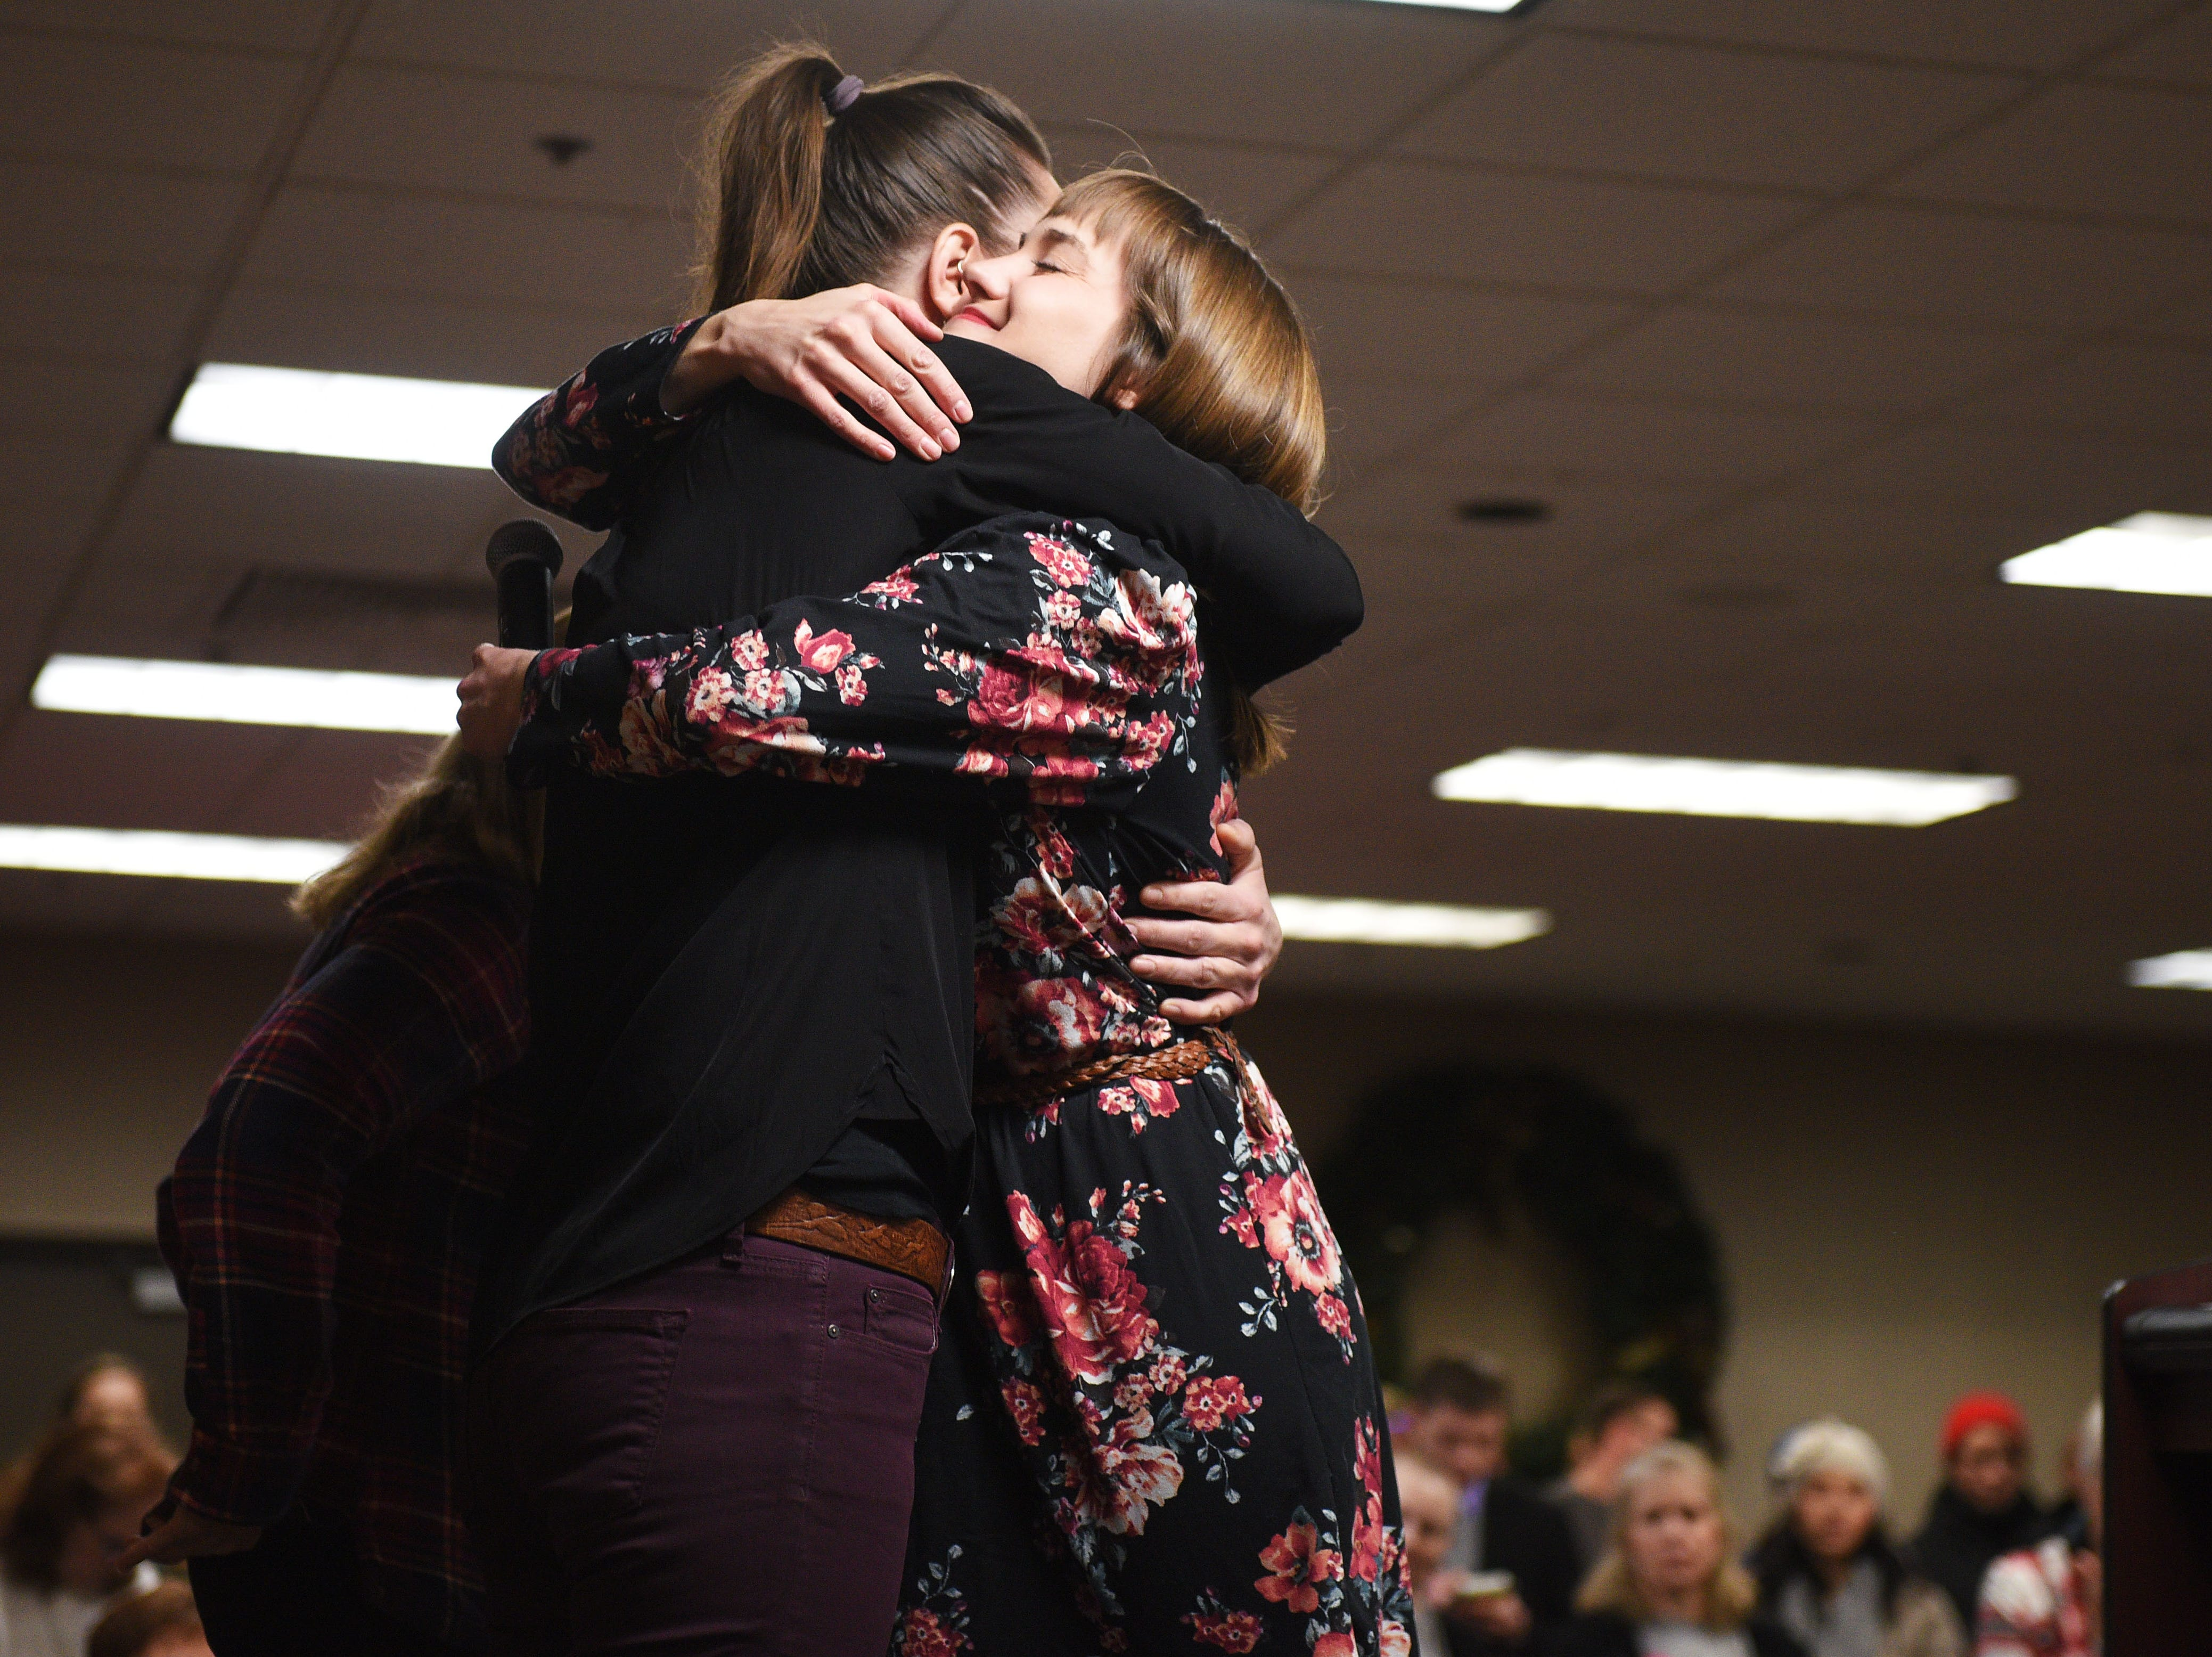 Representatives Kelly Sullivan and Erin Healy hug after their speeches during the Women's March Saturday, Jan. 19, at the Downtown Sioux Falls Holiday Inn-City Centre in Sioux Falls.